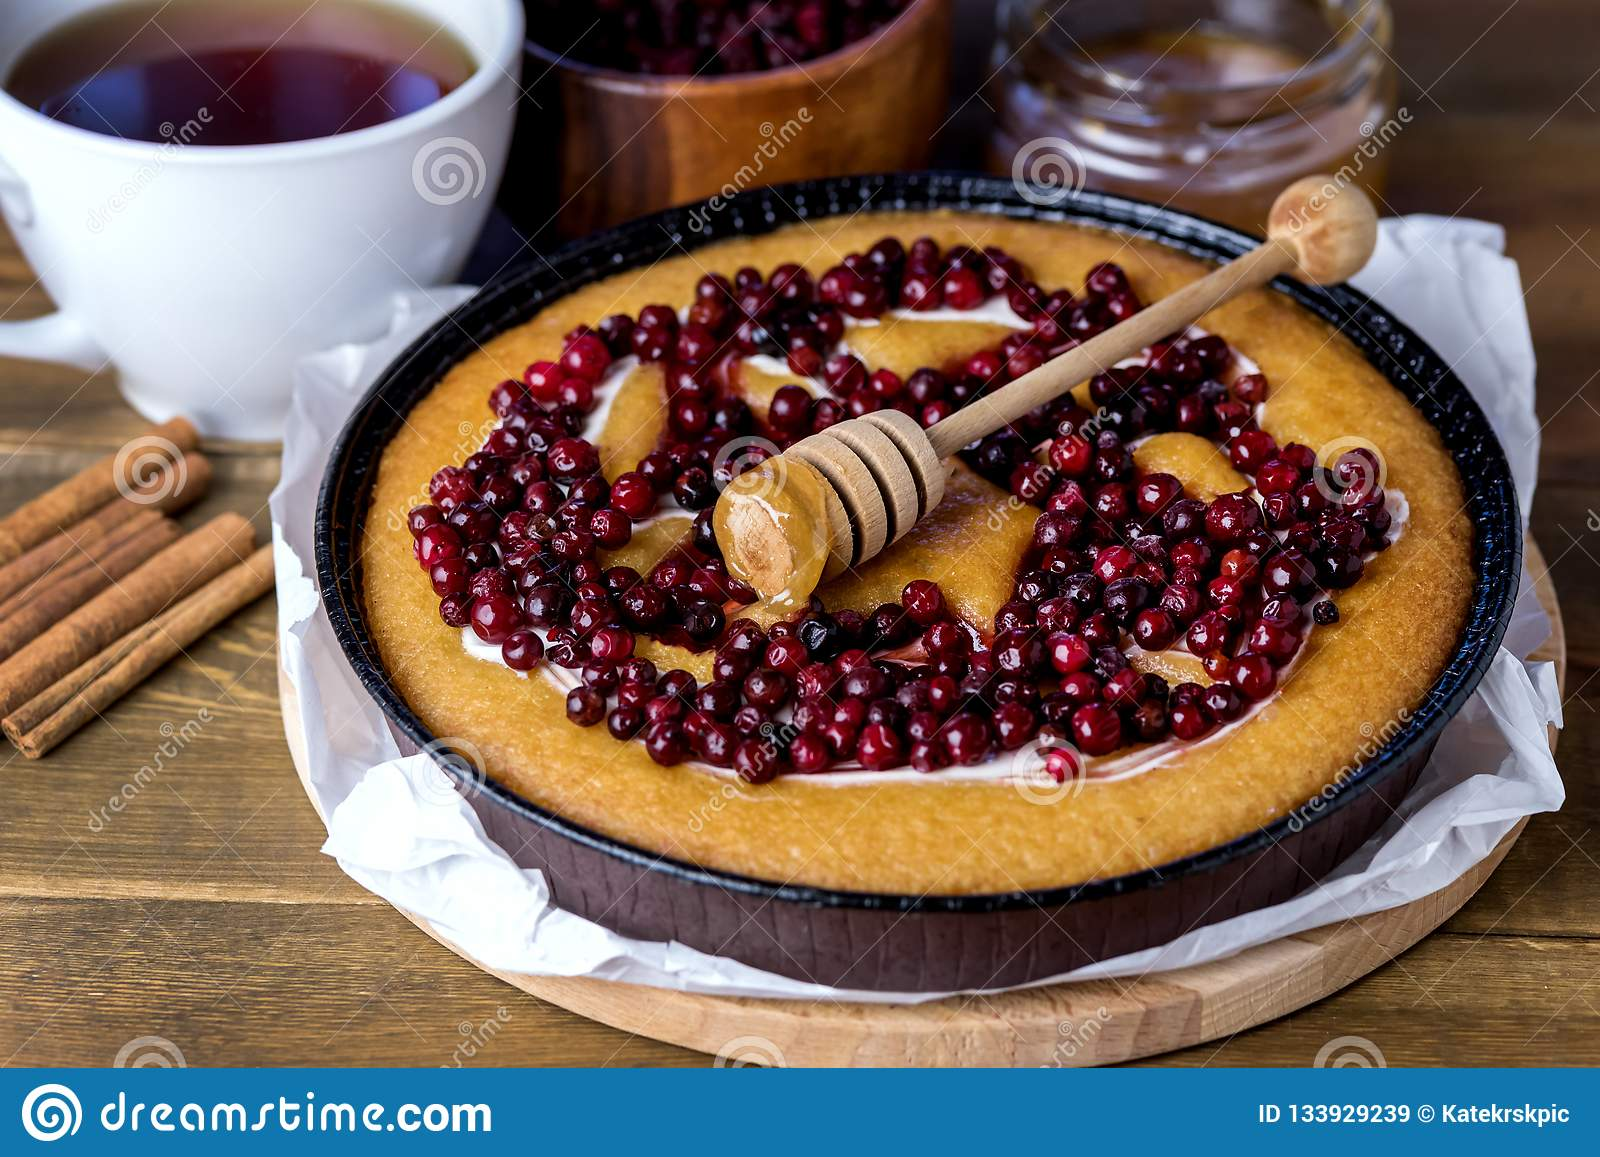 Cranberry Tasty Pie Delicious Cranberry Cake Fresh Cranberries for Christmas or Thanksgiving Day Wooden Background Homemade